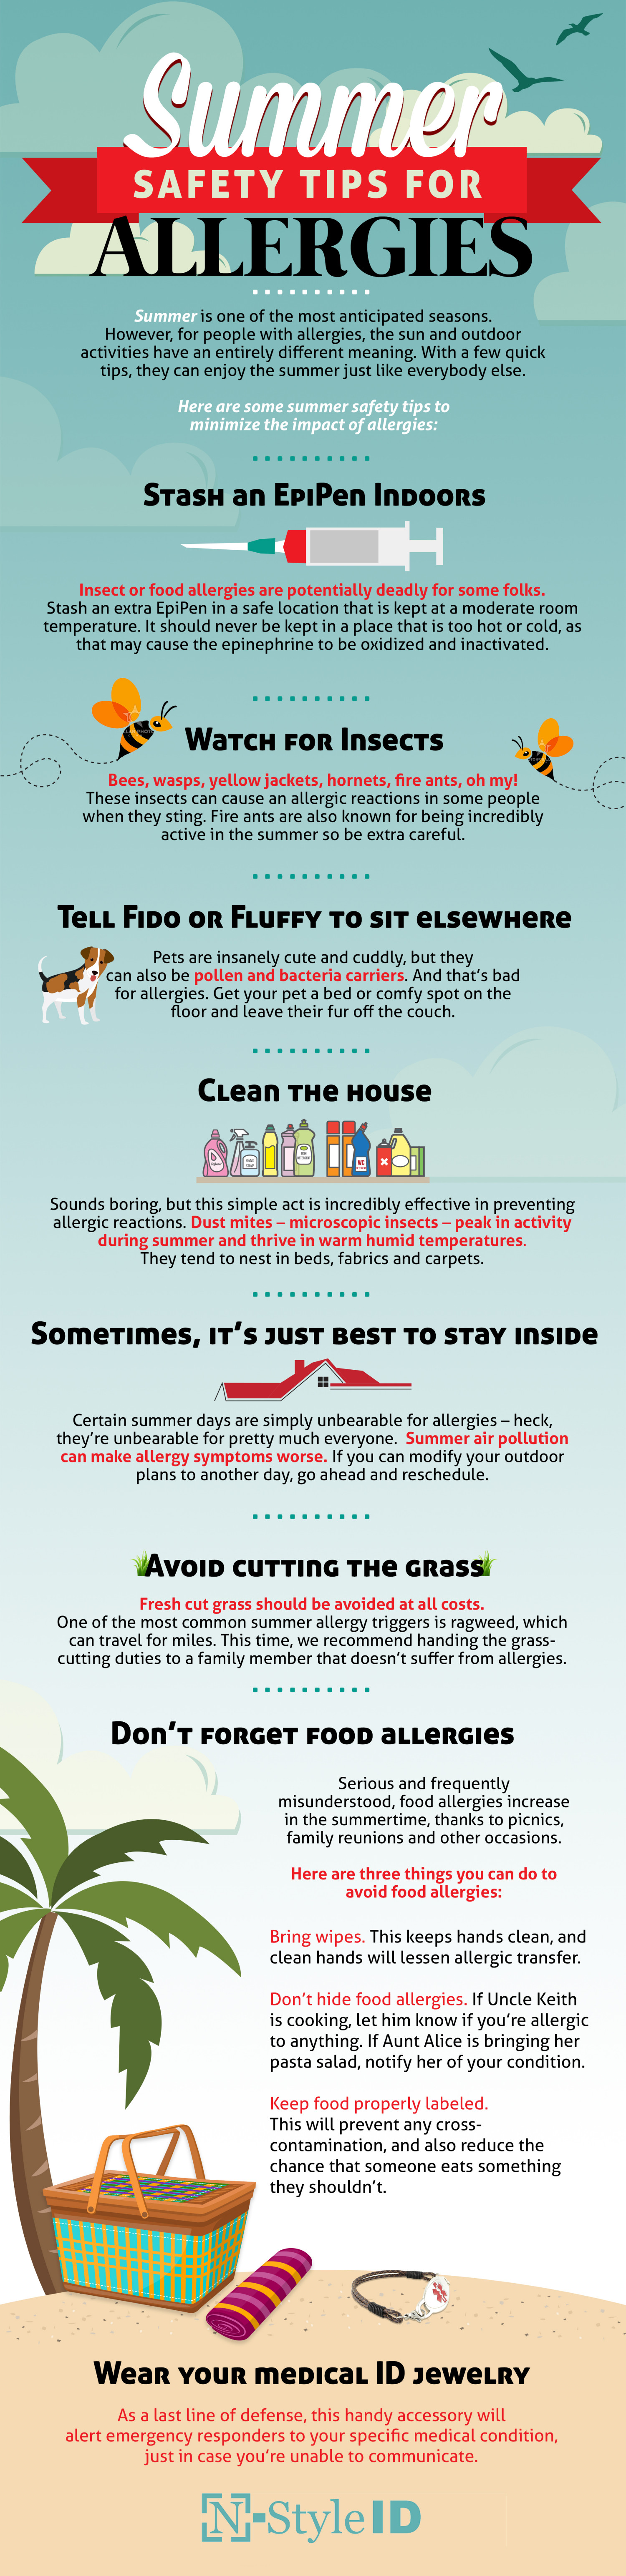 Summer Safety Allergy Tips  Infographic